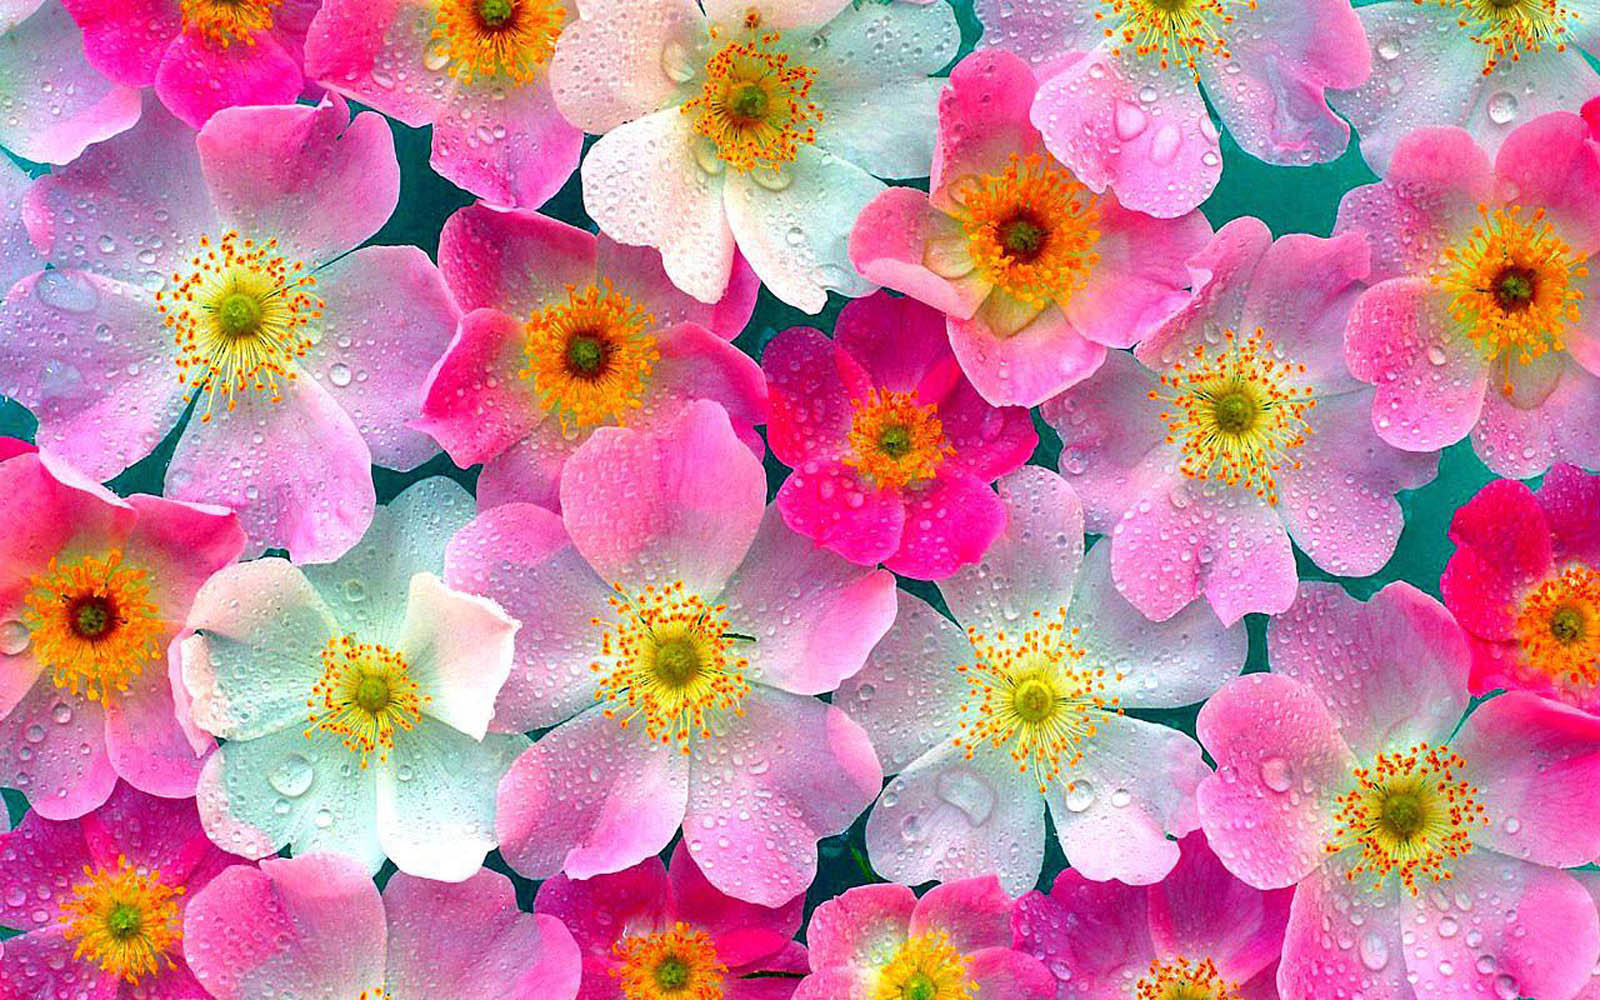 Wallpaper: Pink Flowers Wallpapers